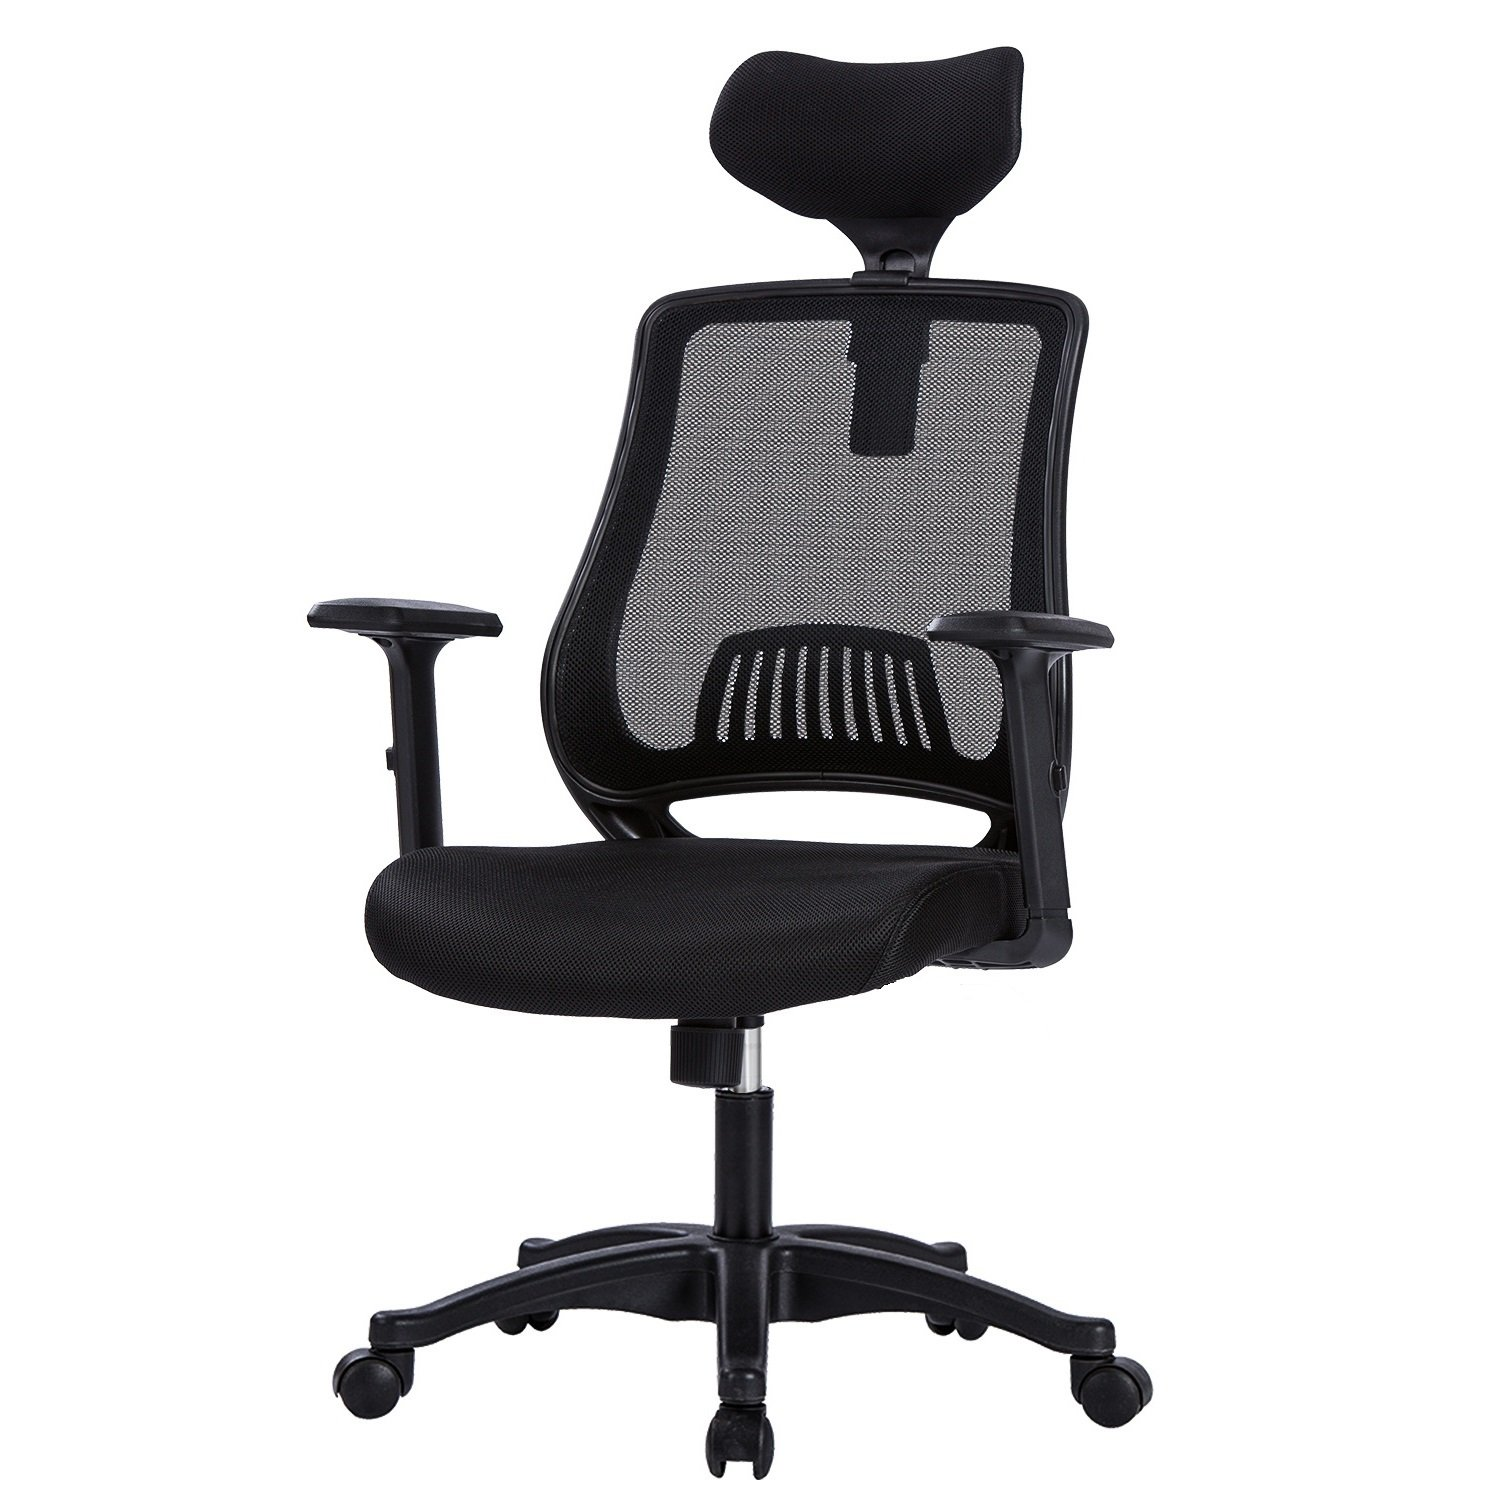 LIANFENG High Back Ergonomic Office Chair - Mesh Computer Desk Task Chair with Adjustable Headrest and Armrests, Built-in Lumbar Support, Black